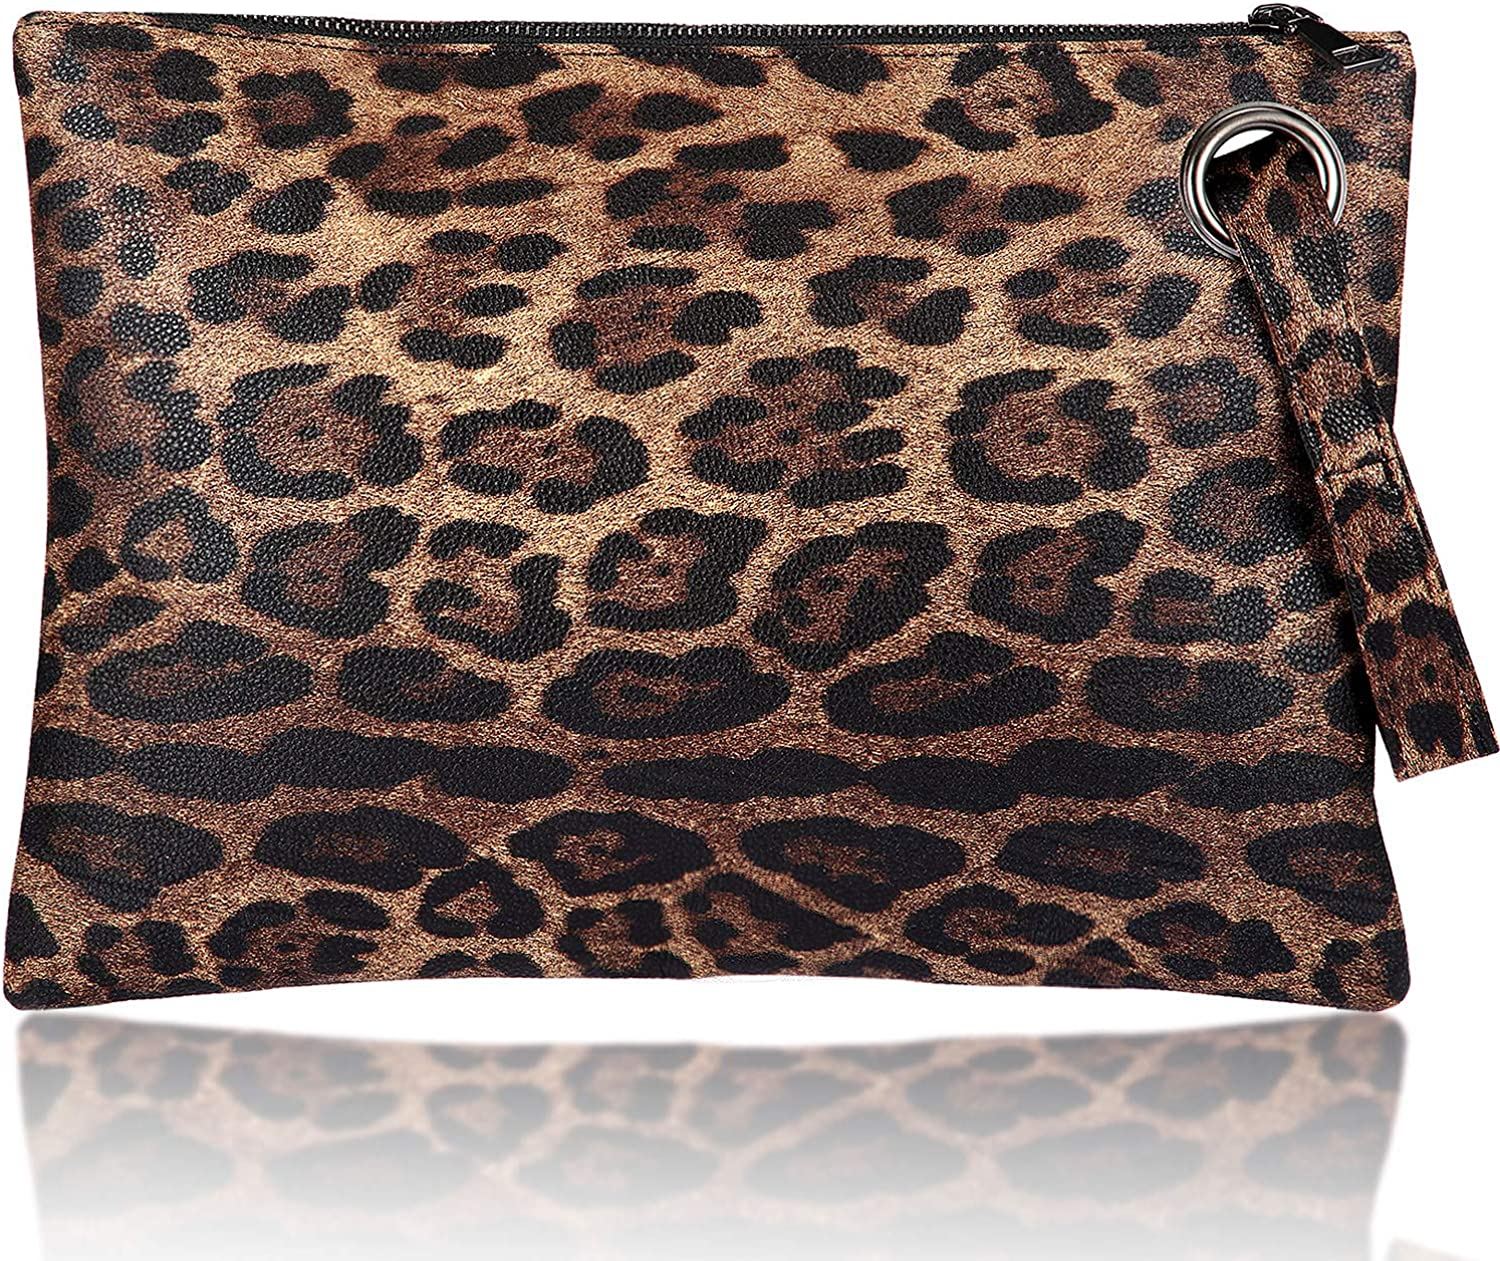 Women Leopard Oversized Clutch Purse Bag Pu Leather Envelope Retro Evening Wristlet Handbag